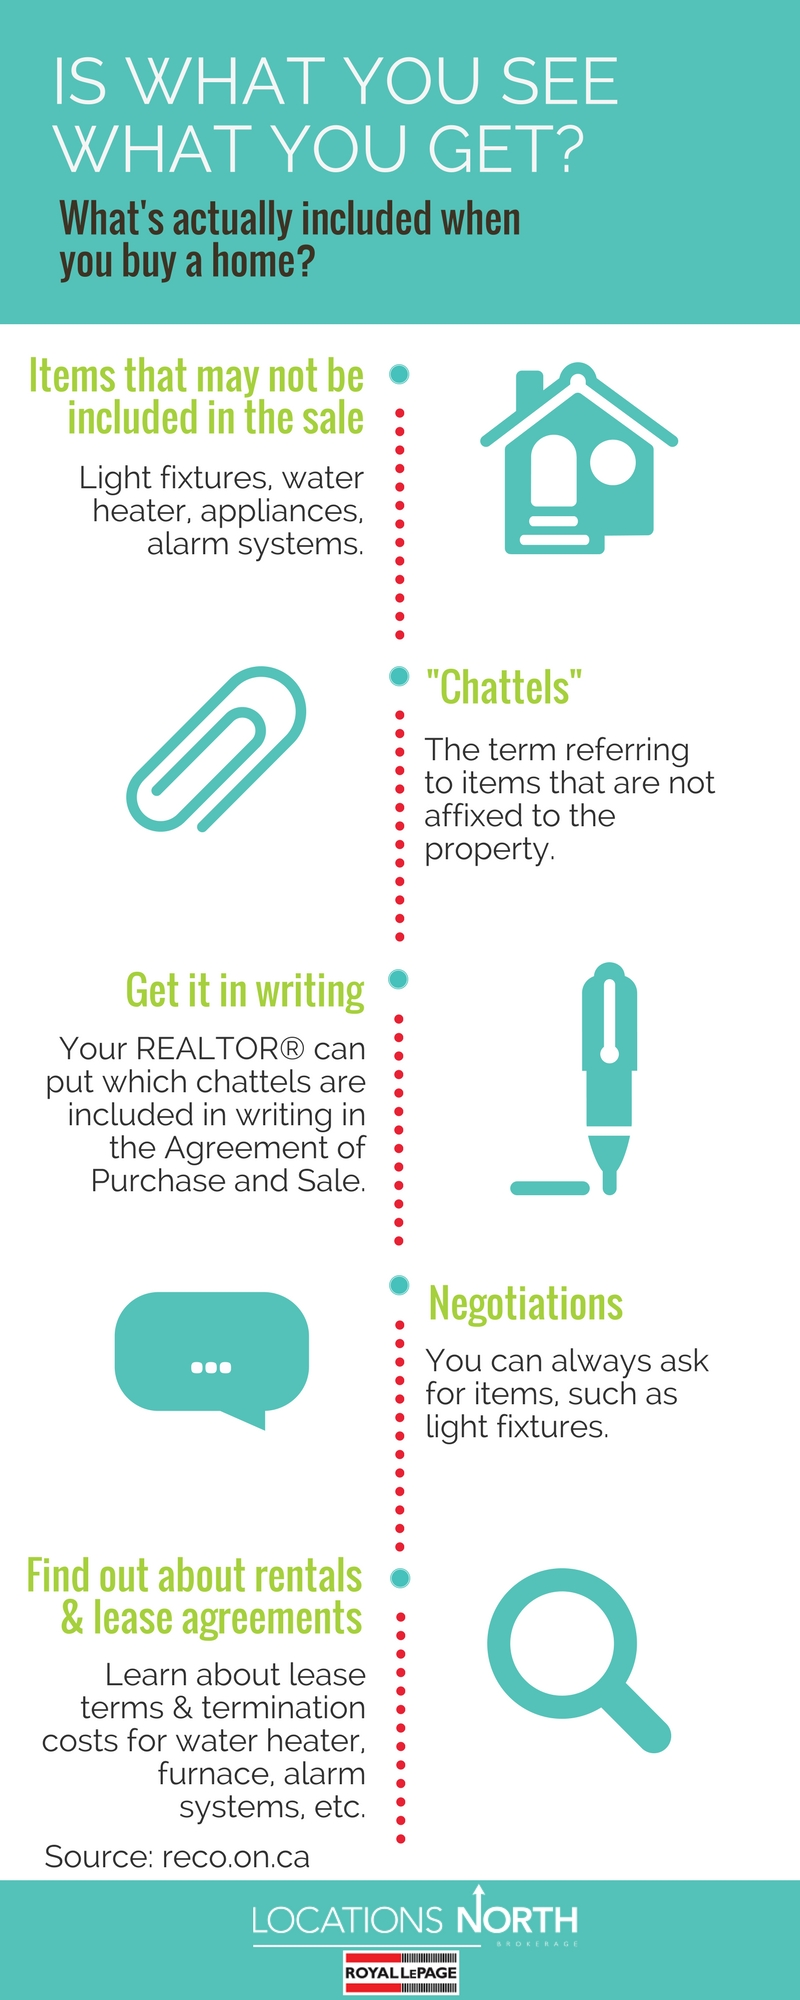 What's Included When You Buy A Home?